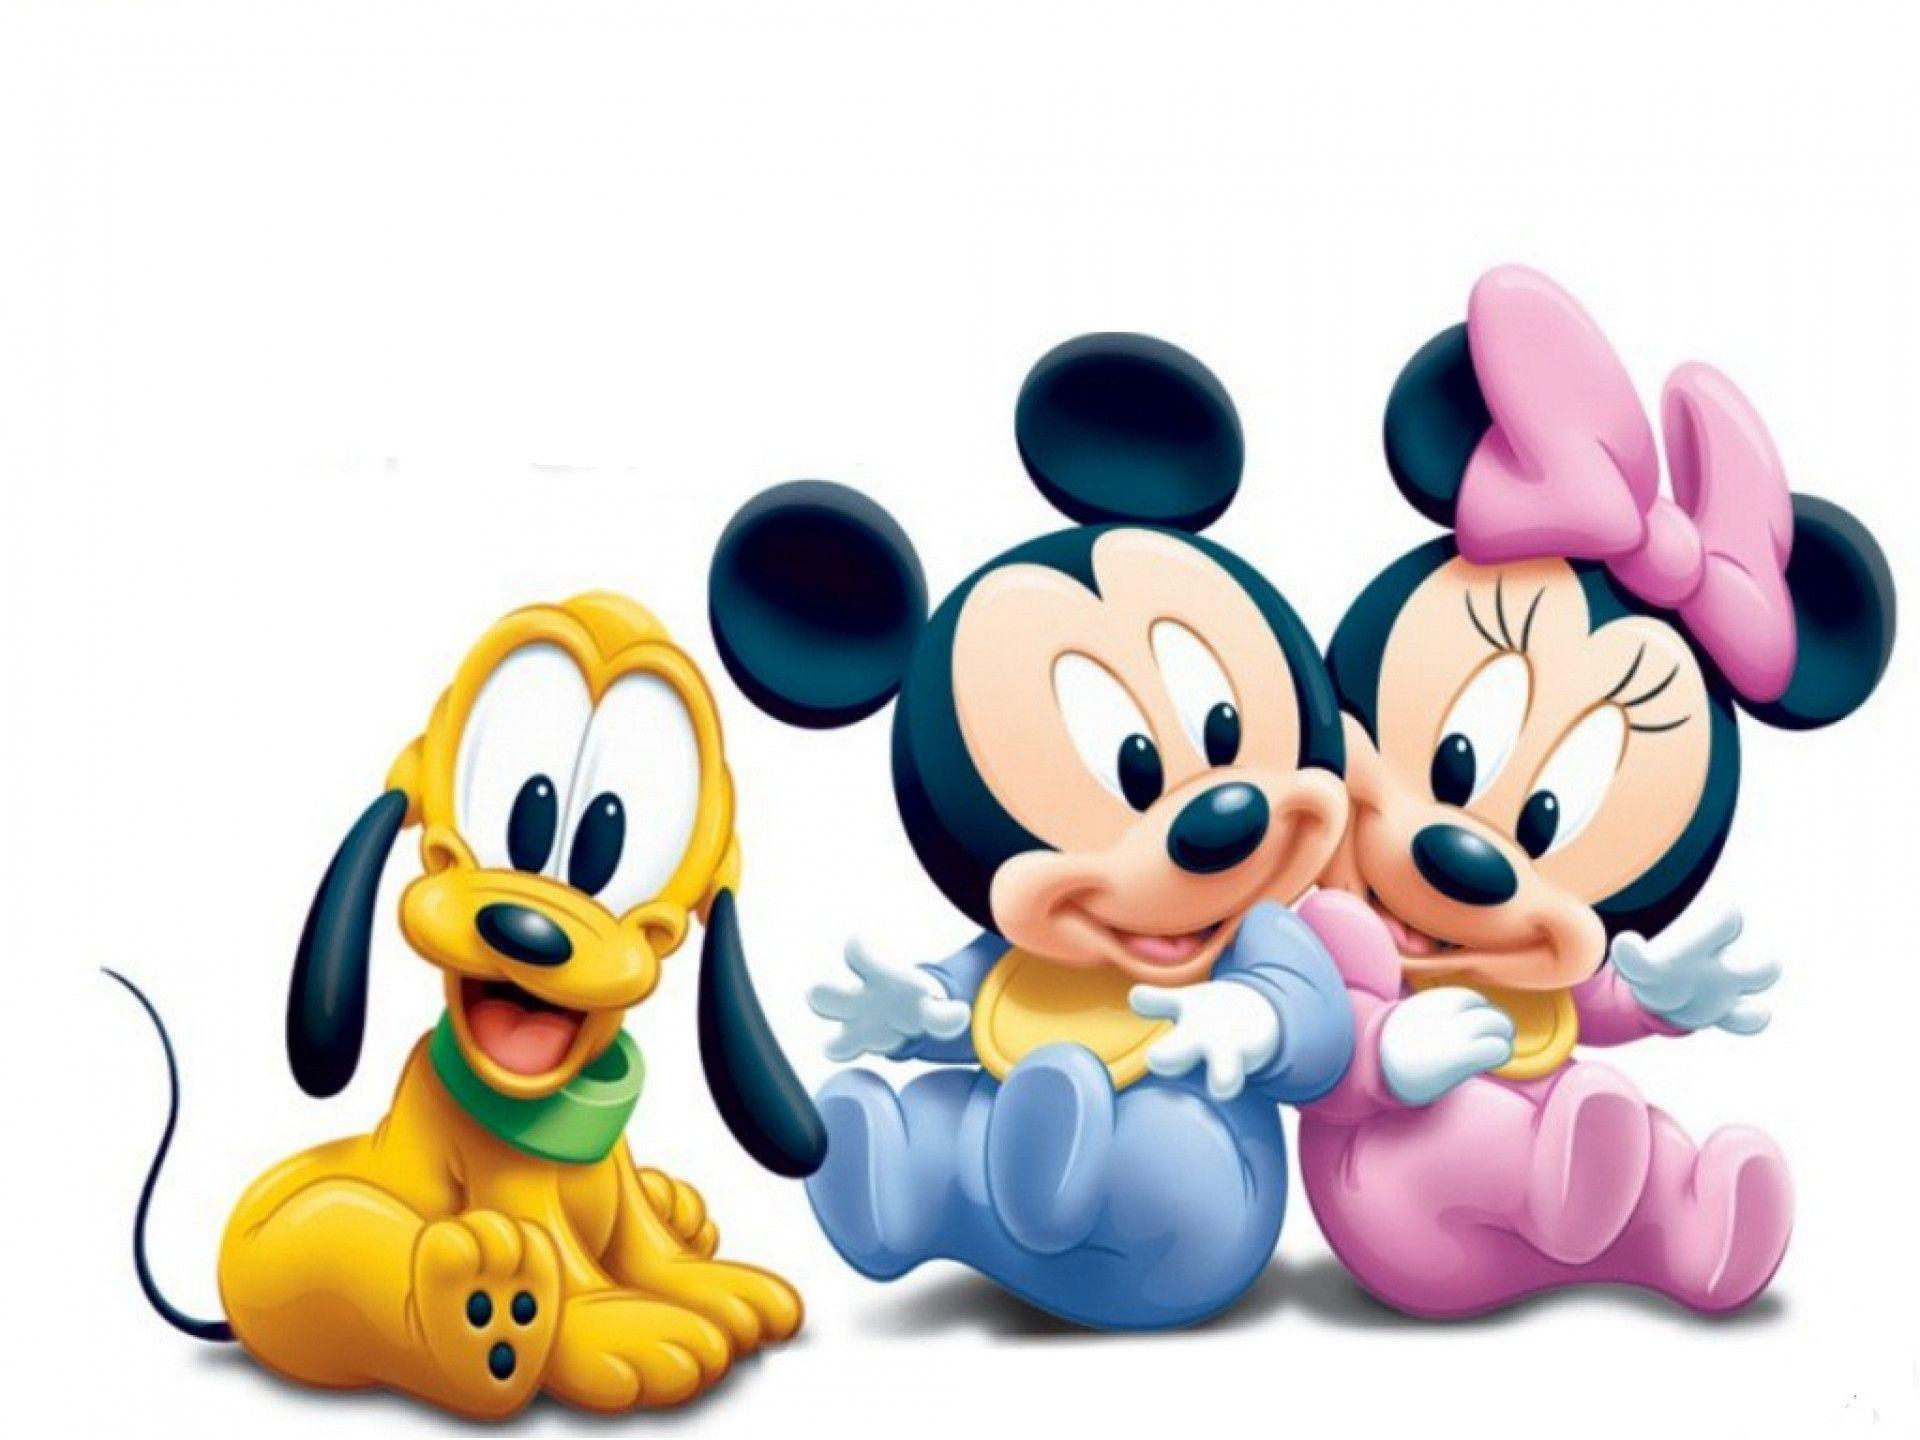 1920x1440 Mickey And Minnie Mouse Wallpapers